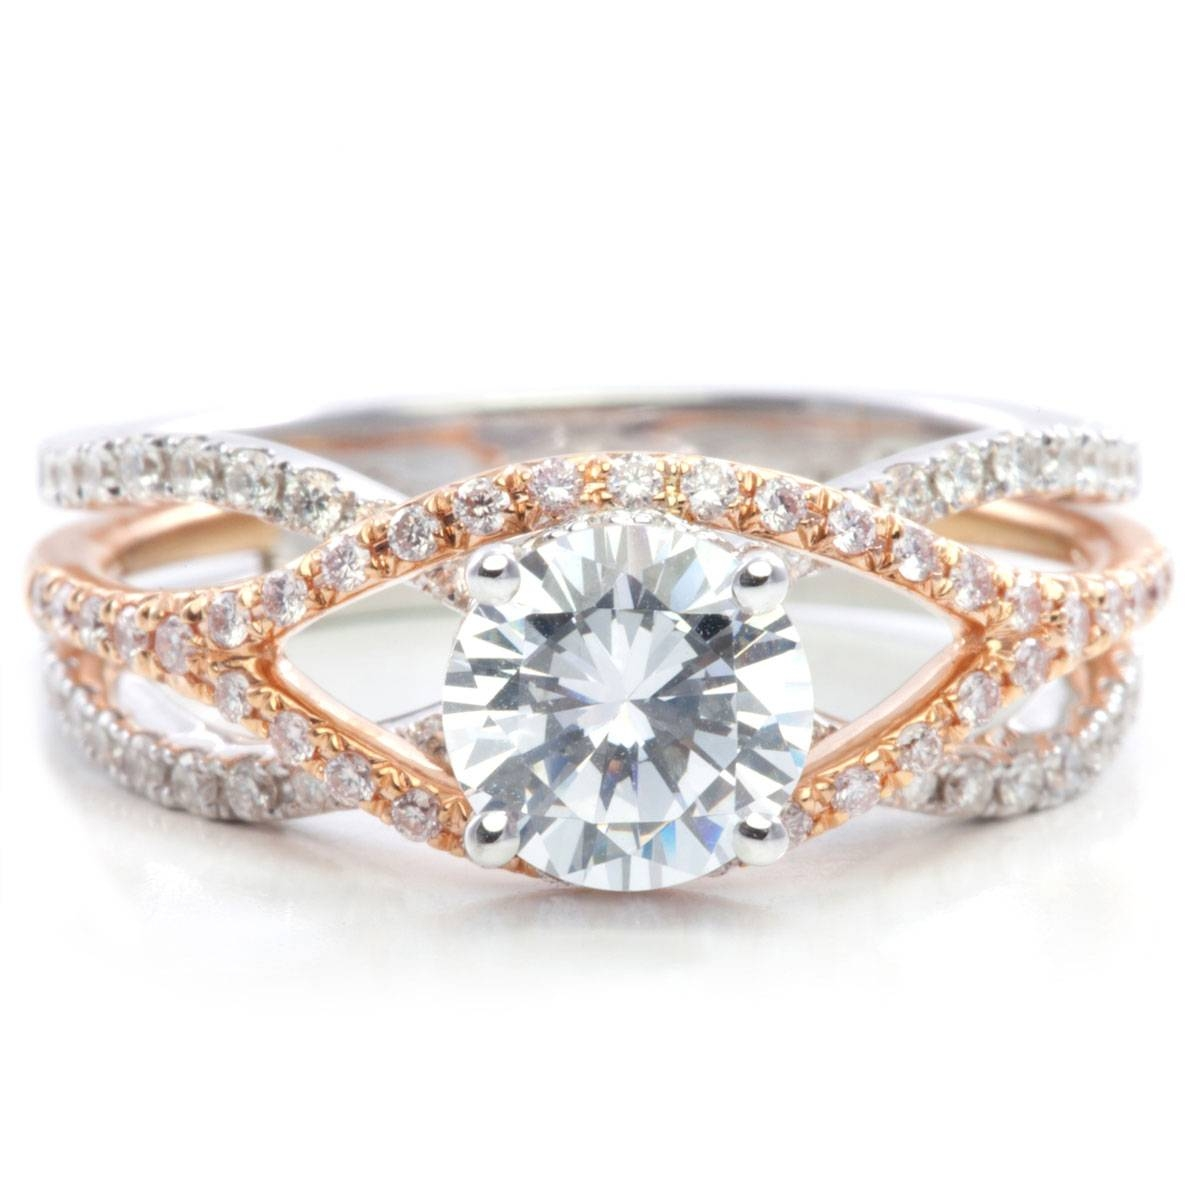 Wedding Rings : Gold Rose Ring Zales Engagement Rings Rose Gold Within San Diego Engagement Rings (View 13 of 15)